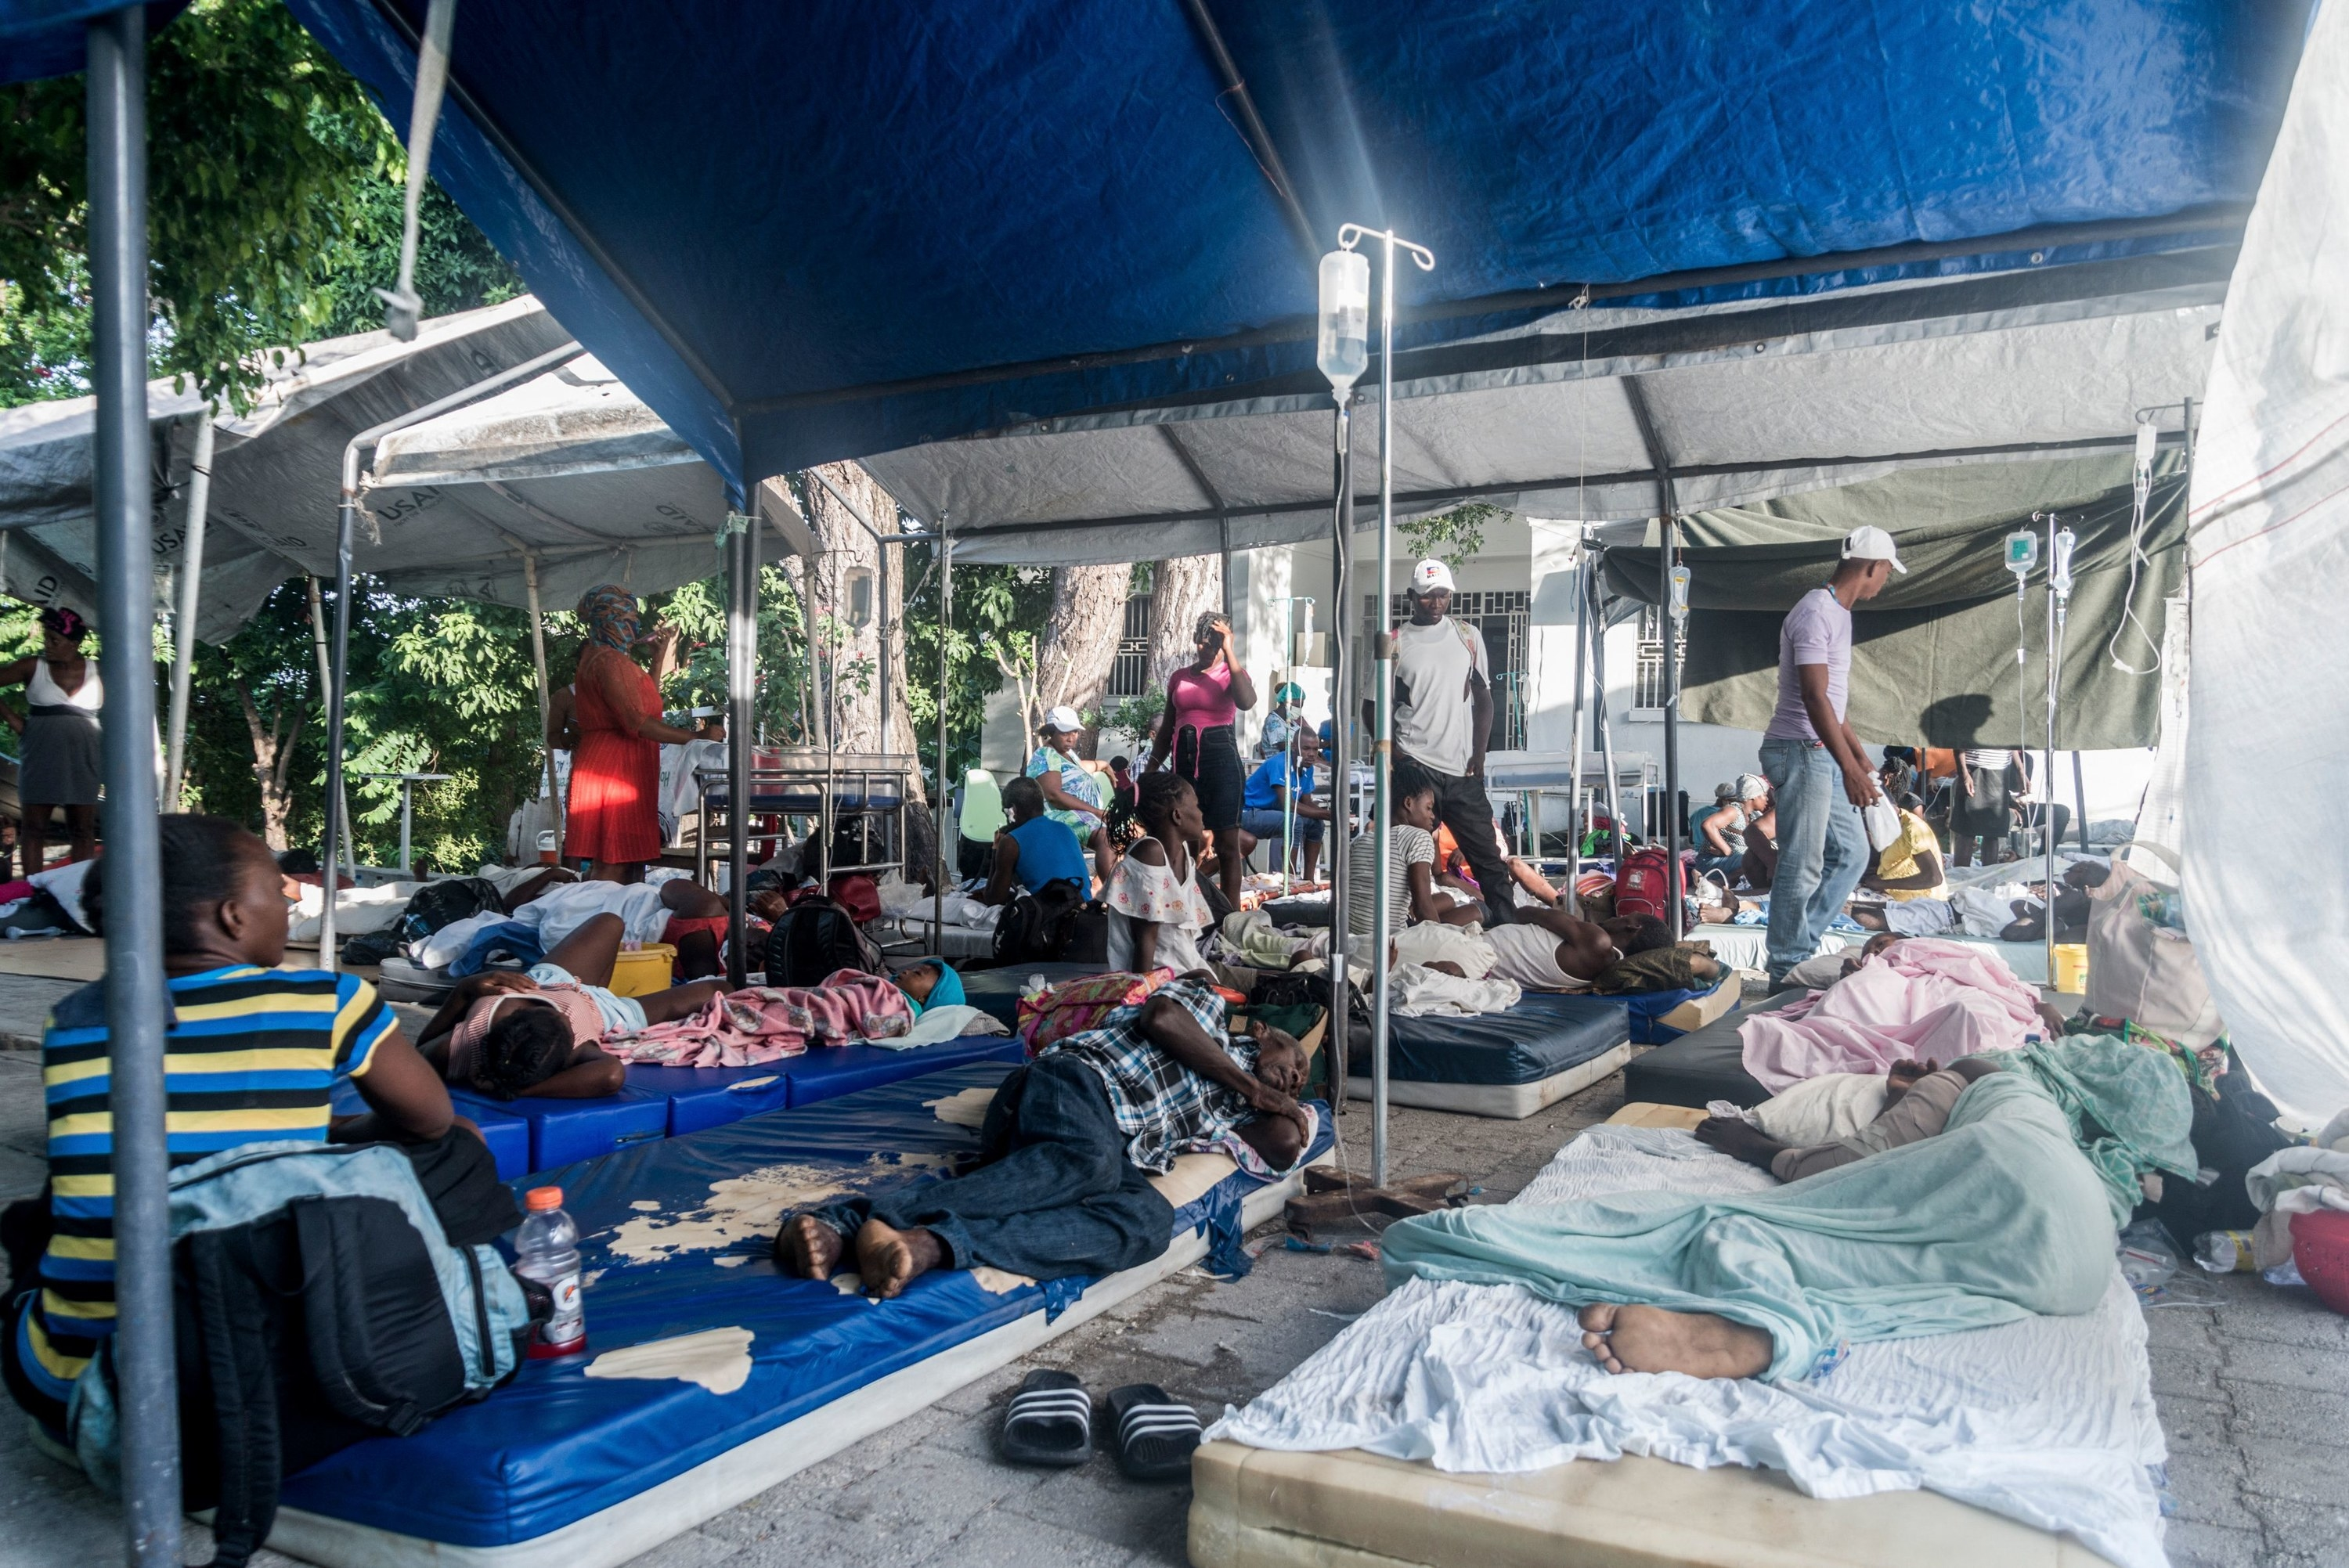 People lie on mattresses on the ground in a pop-up hospital assembled with metal rods and a tarp canopy